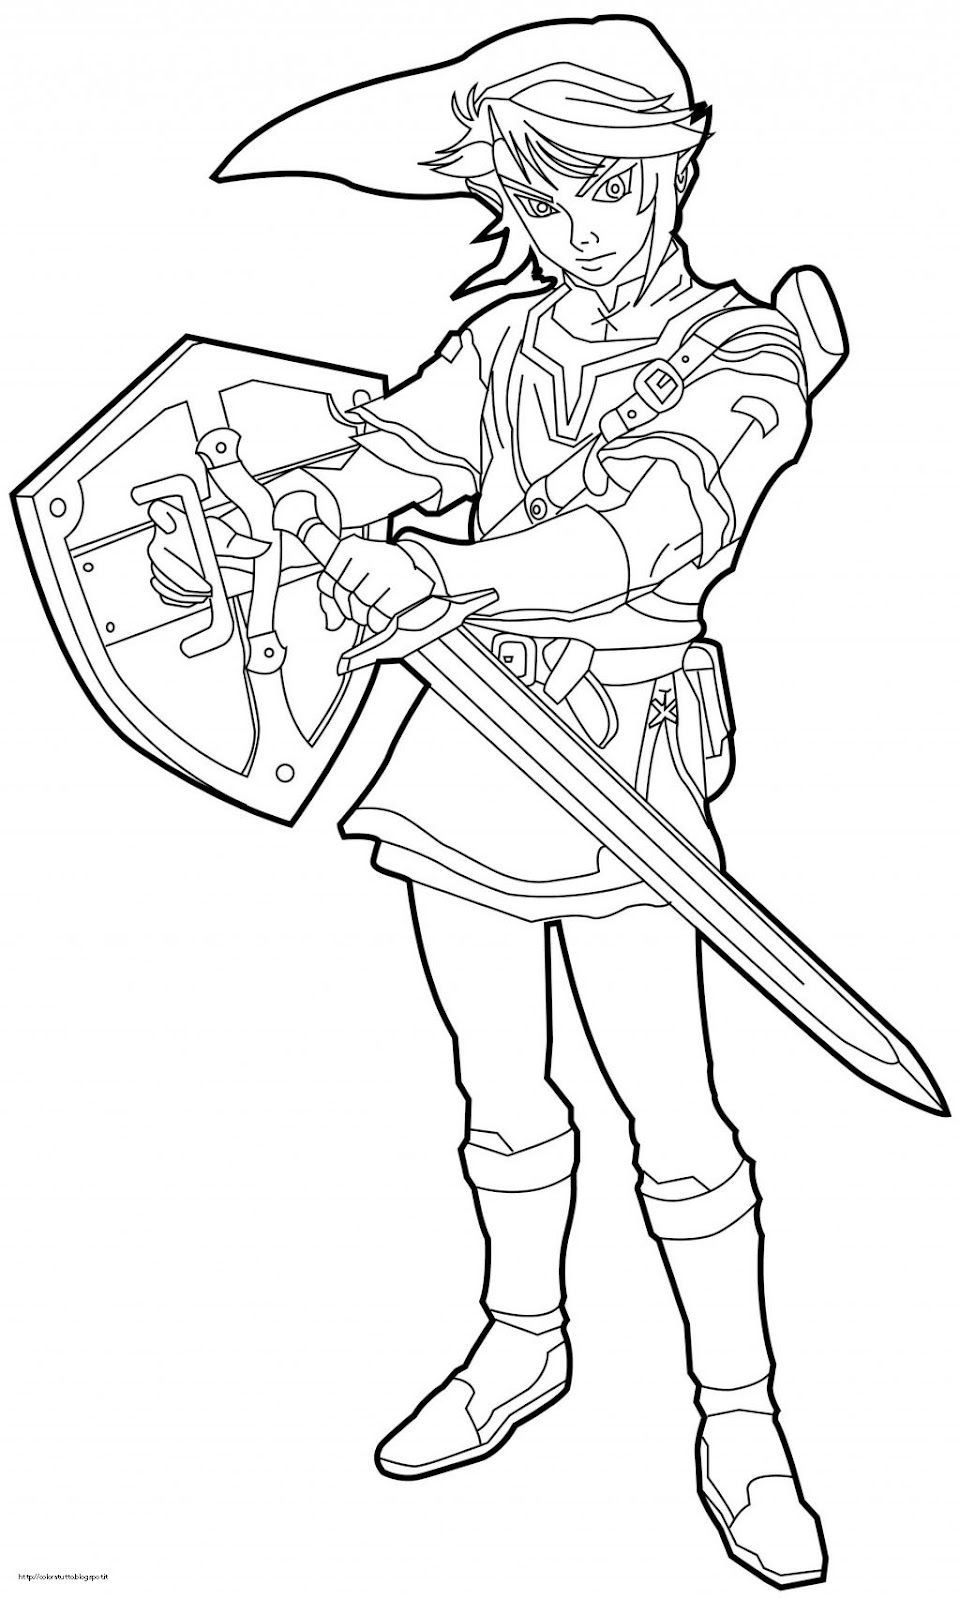 Zelda - Link coloring page | color pages | Pinterest | Coloring ...